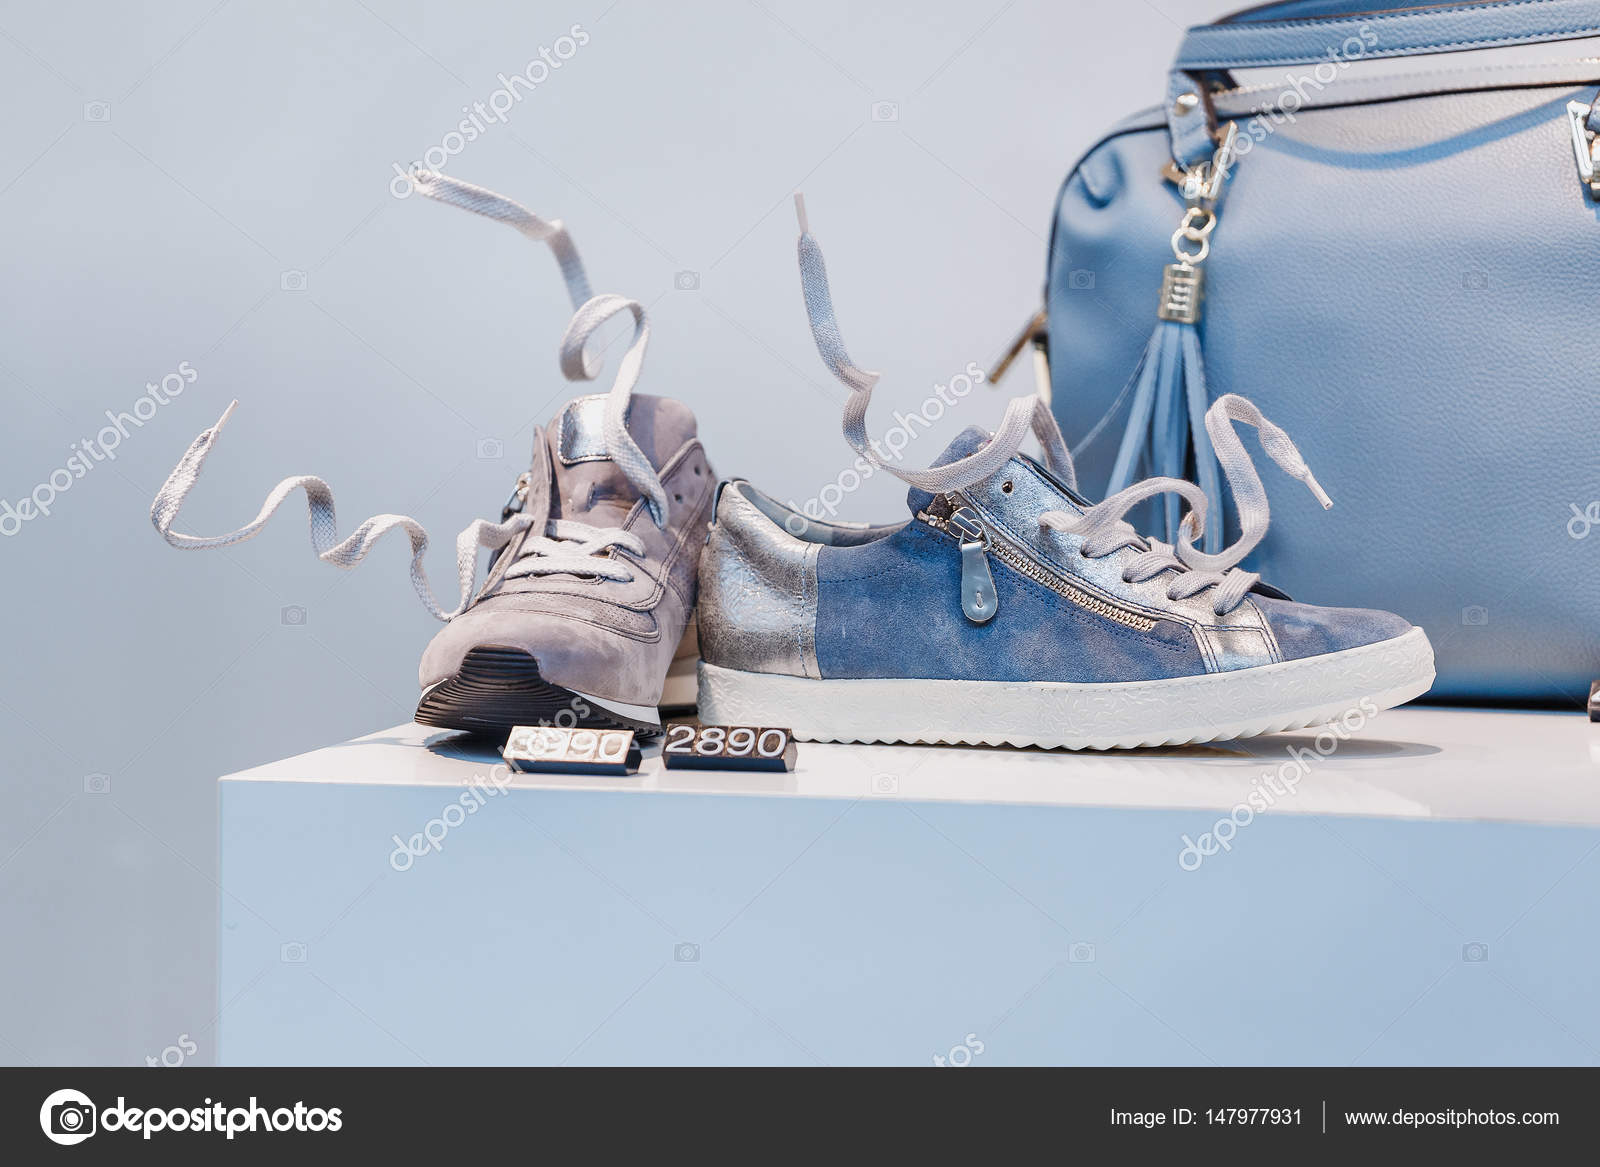 Showcase Of A Fashion Store With Casual Futuristic Shoes And A Bag With A Price Tag Stock Photo C Frantic00 147977931